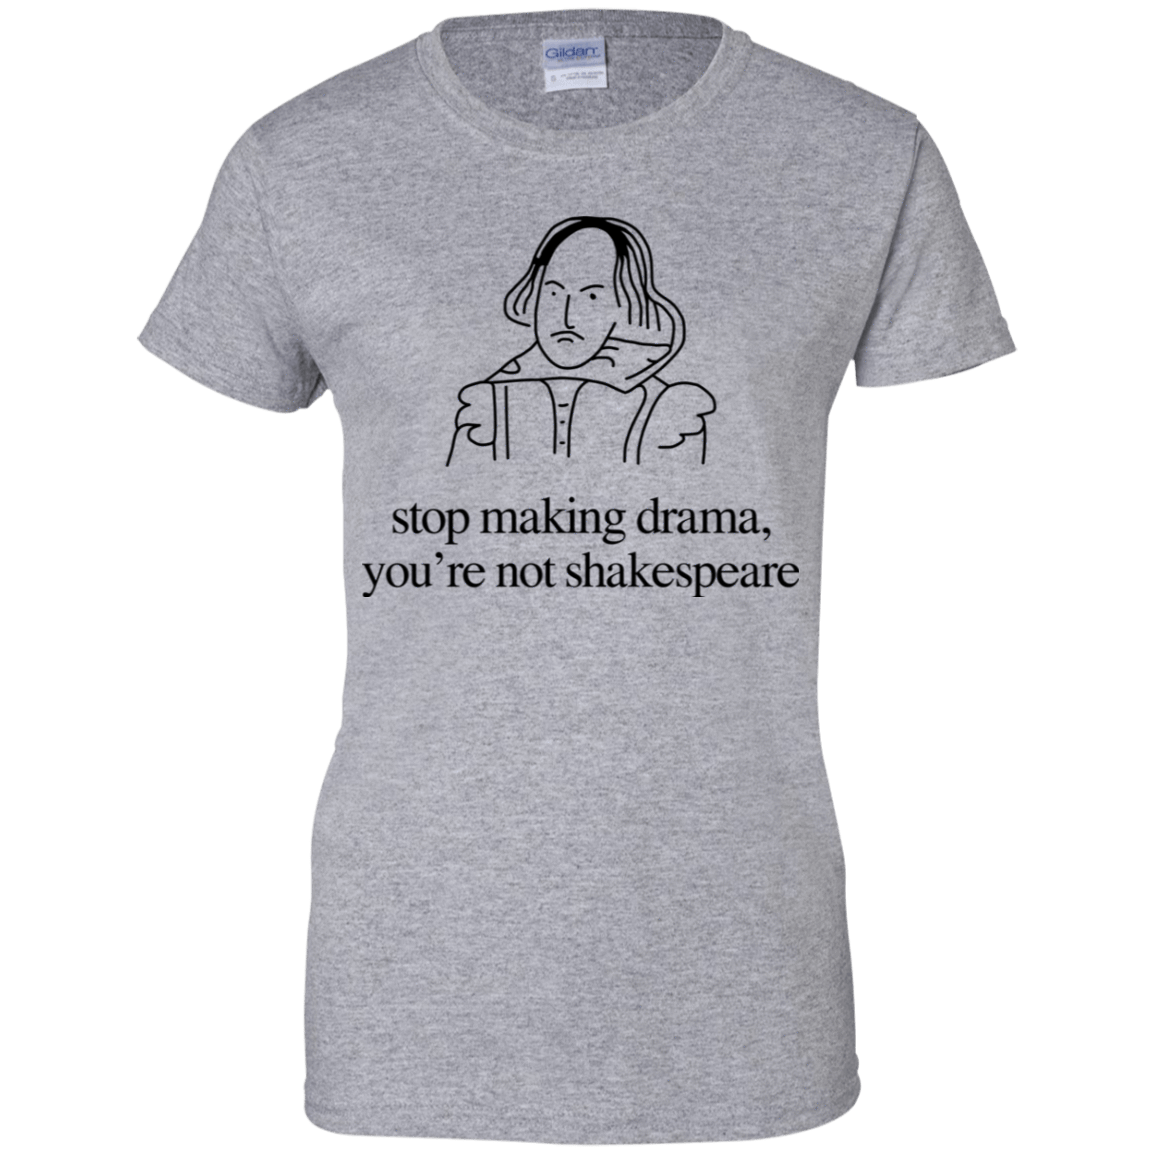 Stop Making Drama You're Not Shakespeare 939-9265-72088089-44821 - Tee Ript